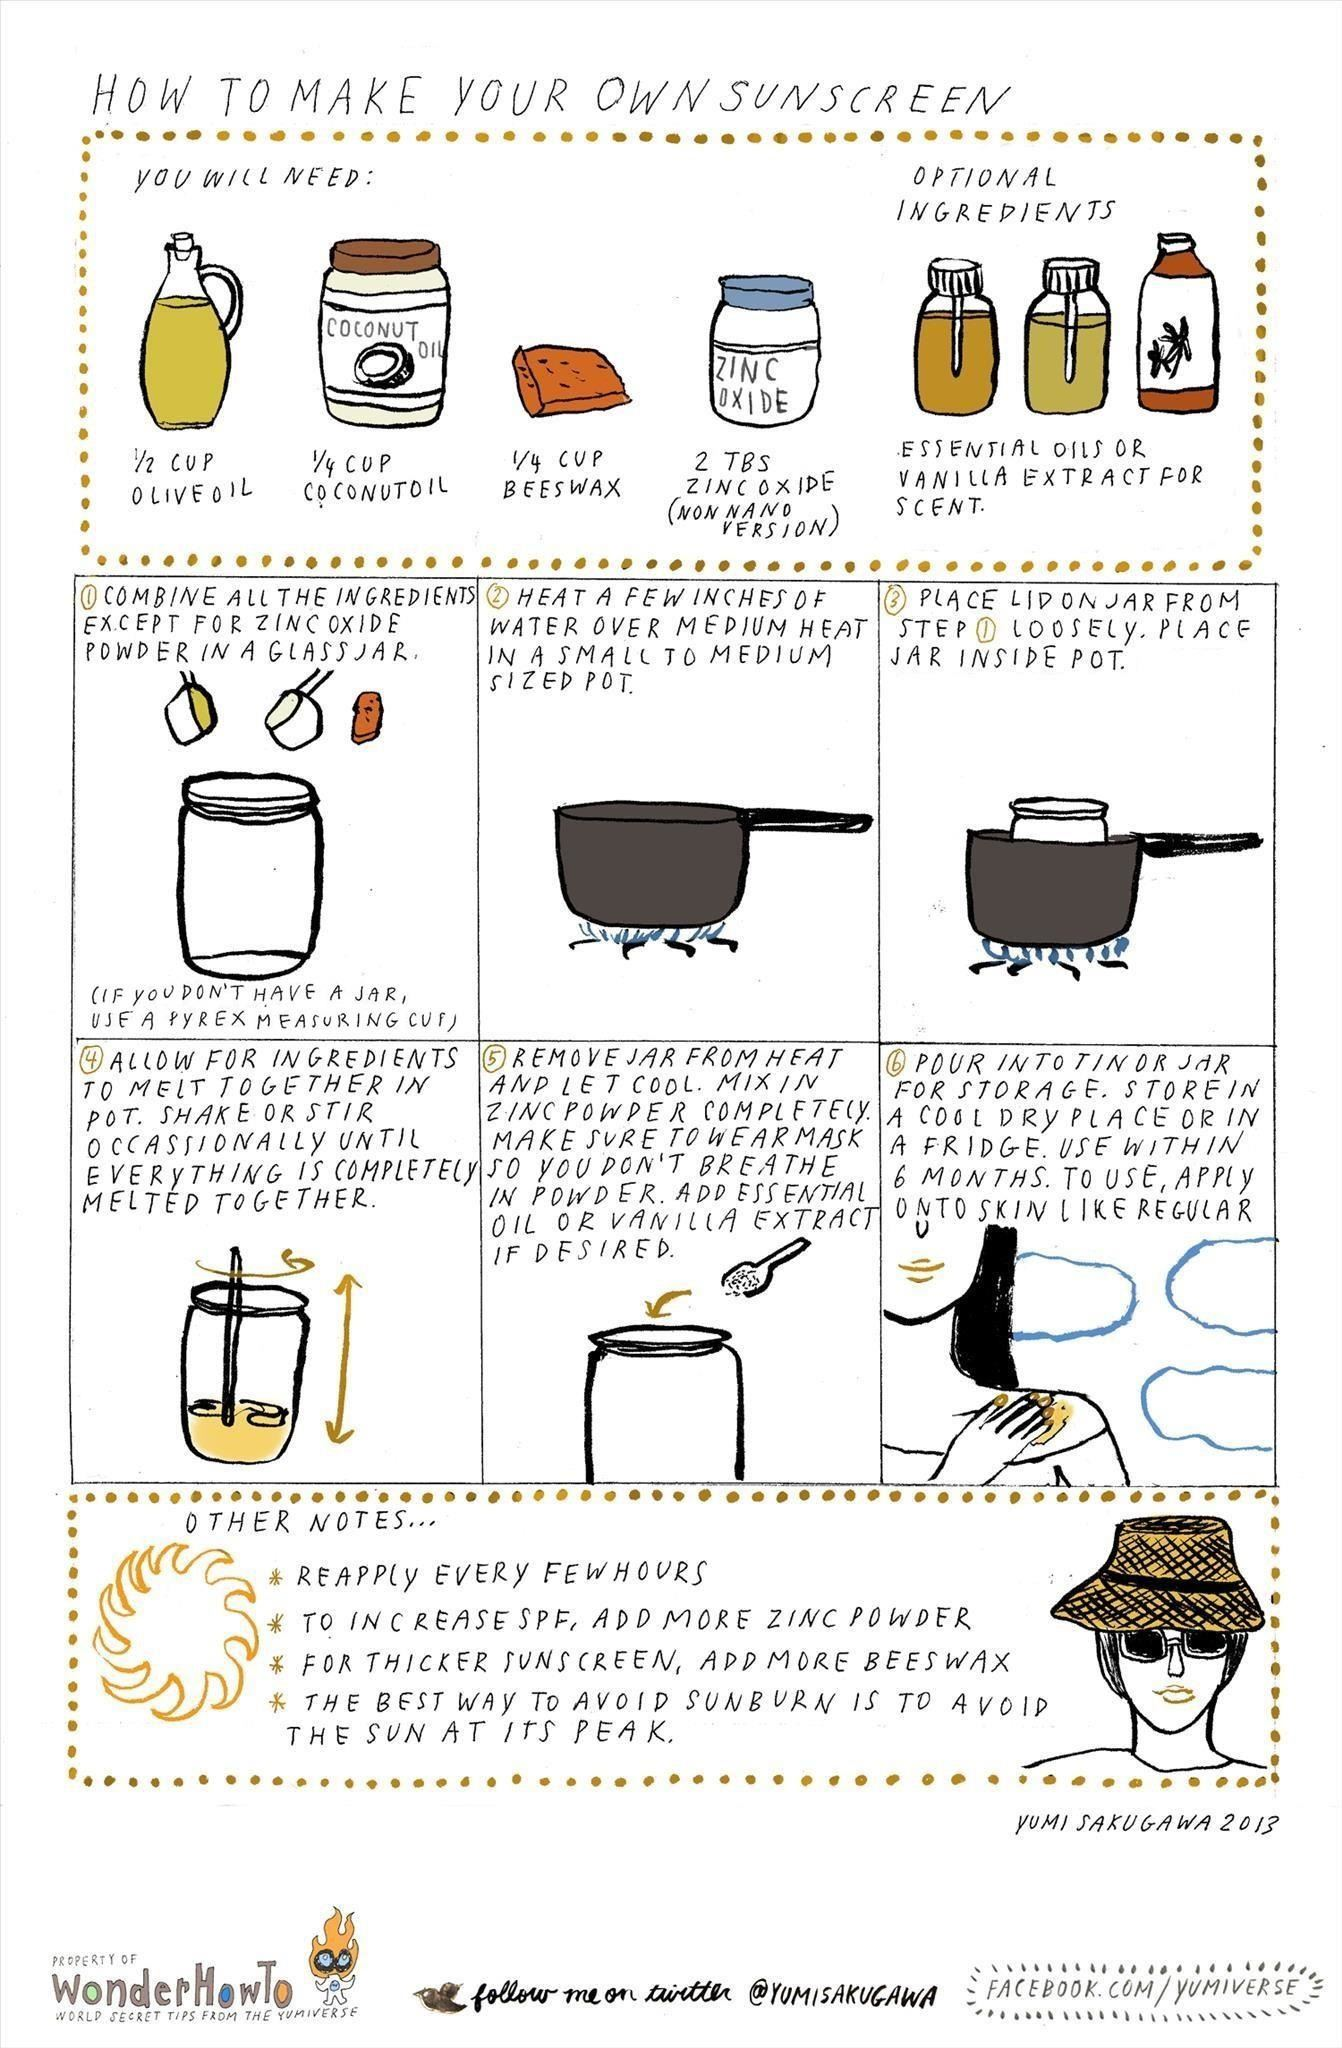 How to Make Your Own Non-Toxic Sunscreen at Home